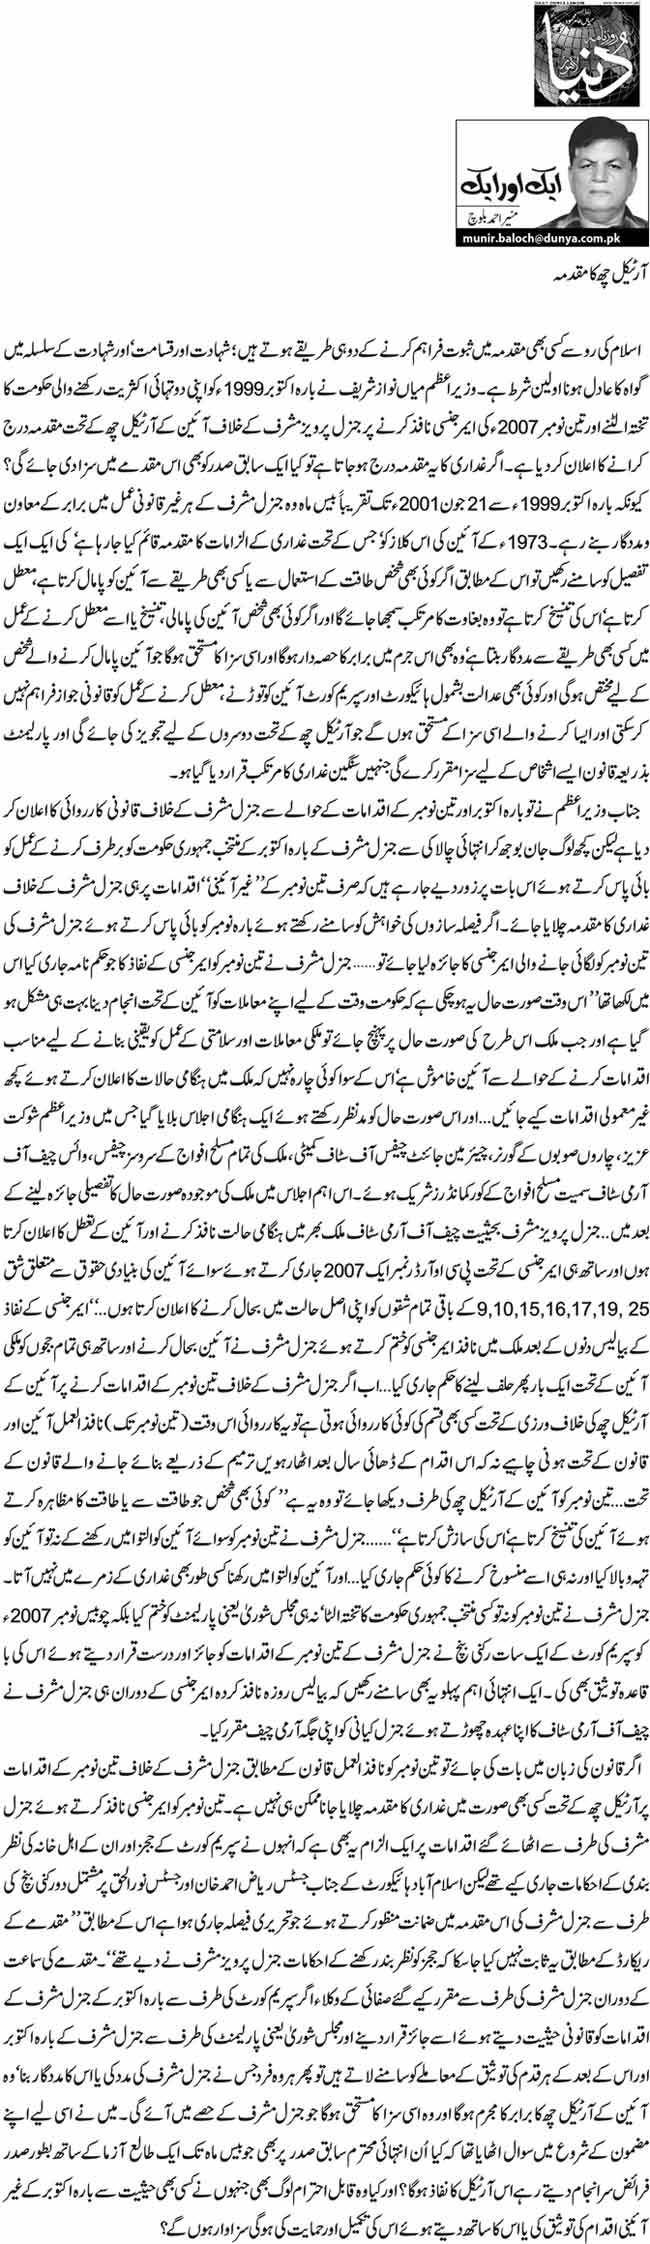 Article 6 Ka Muqaddma - Munir Ahmed Baloch